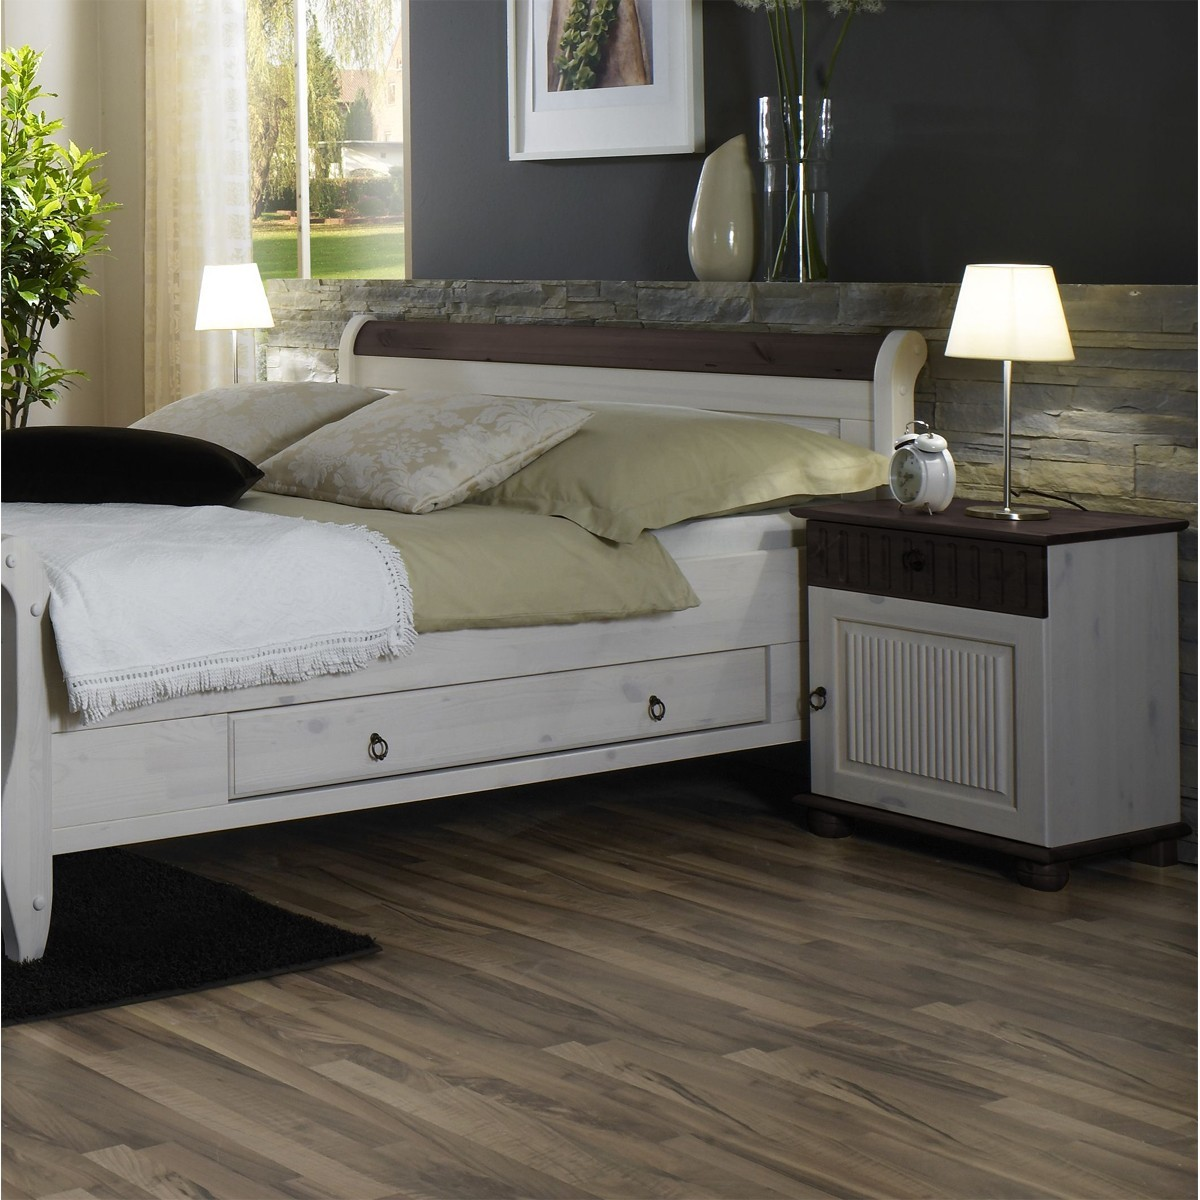 nachttisch silvana in kiefer daenische beize. Black Bedroom Furniture Sets. Home Design Ideas